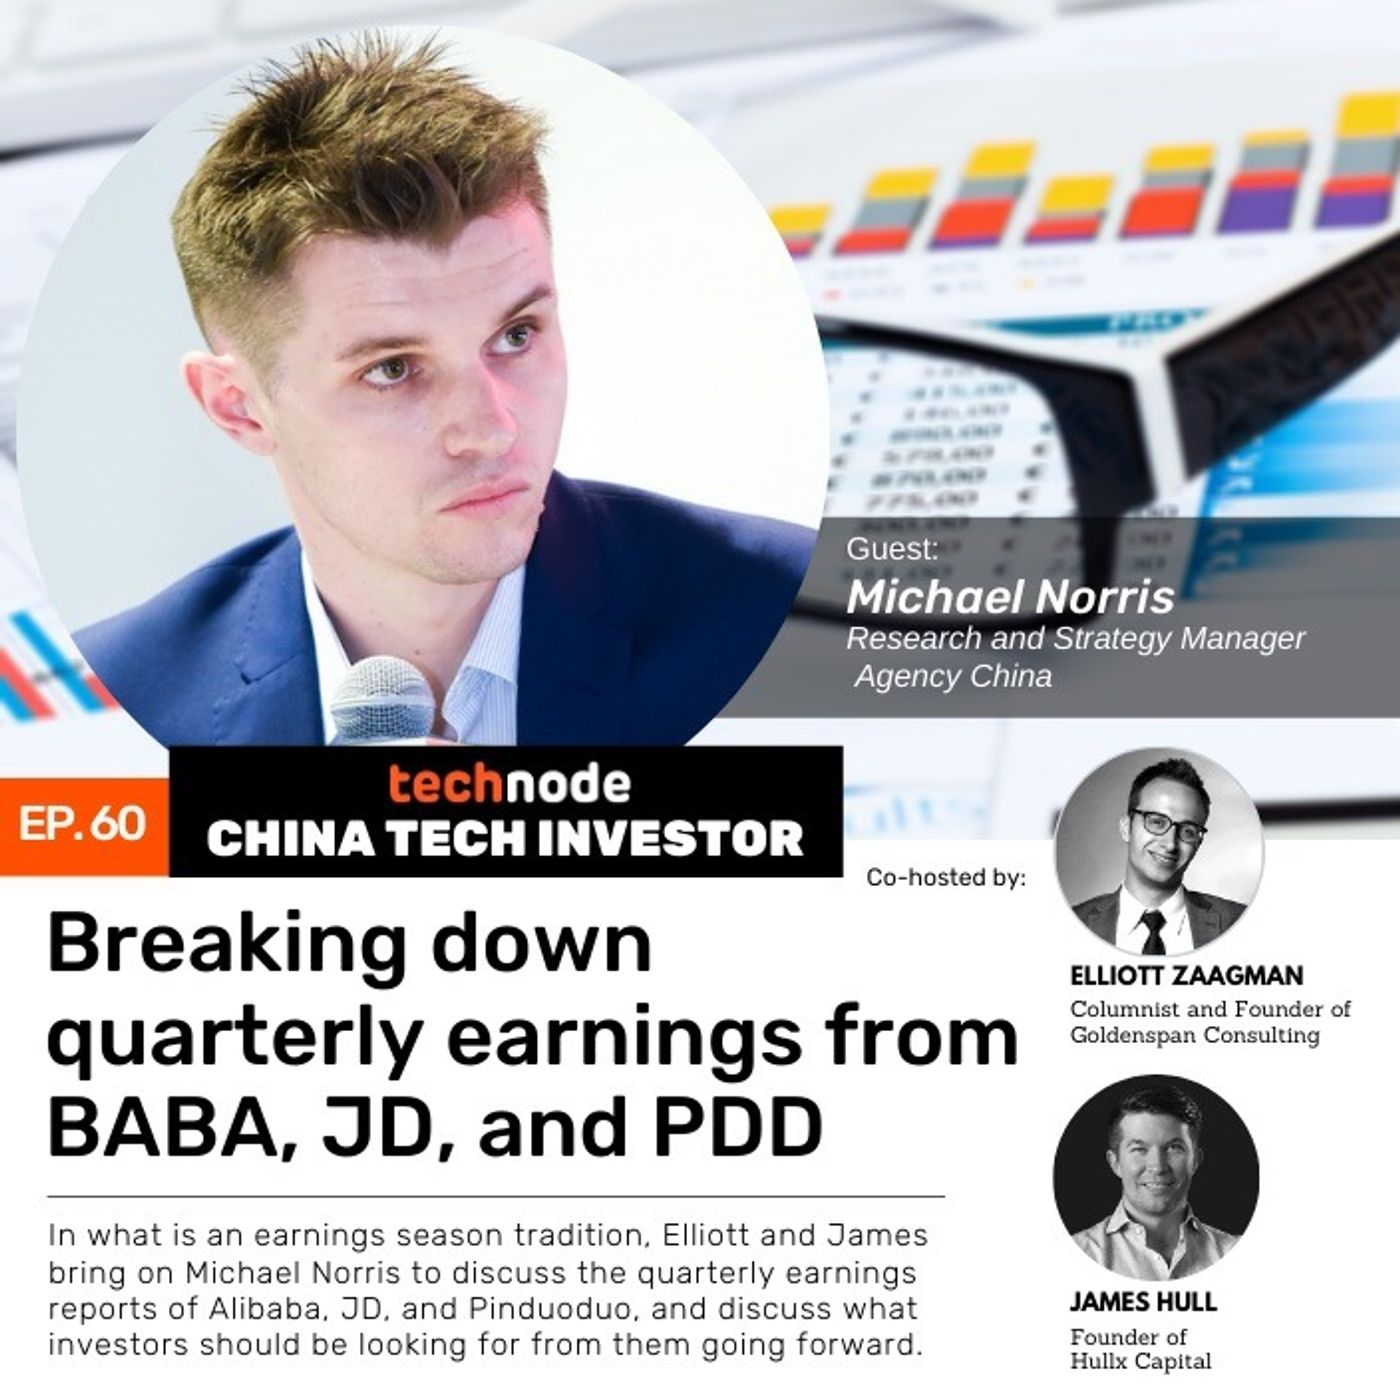 60: Breaking down quarterly earnings from BABA, JD, and PDD